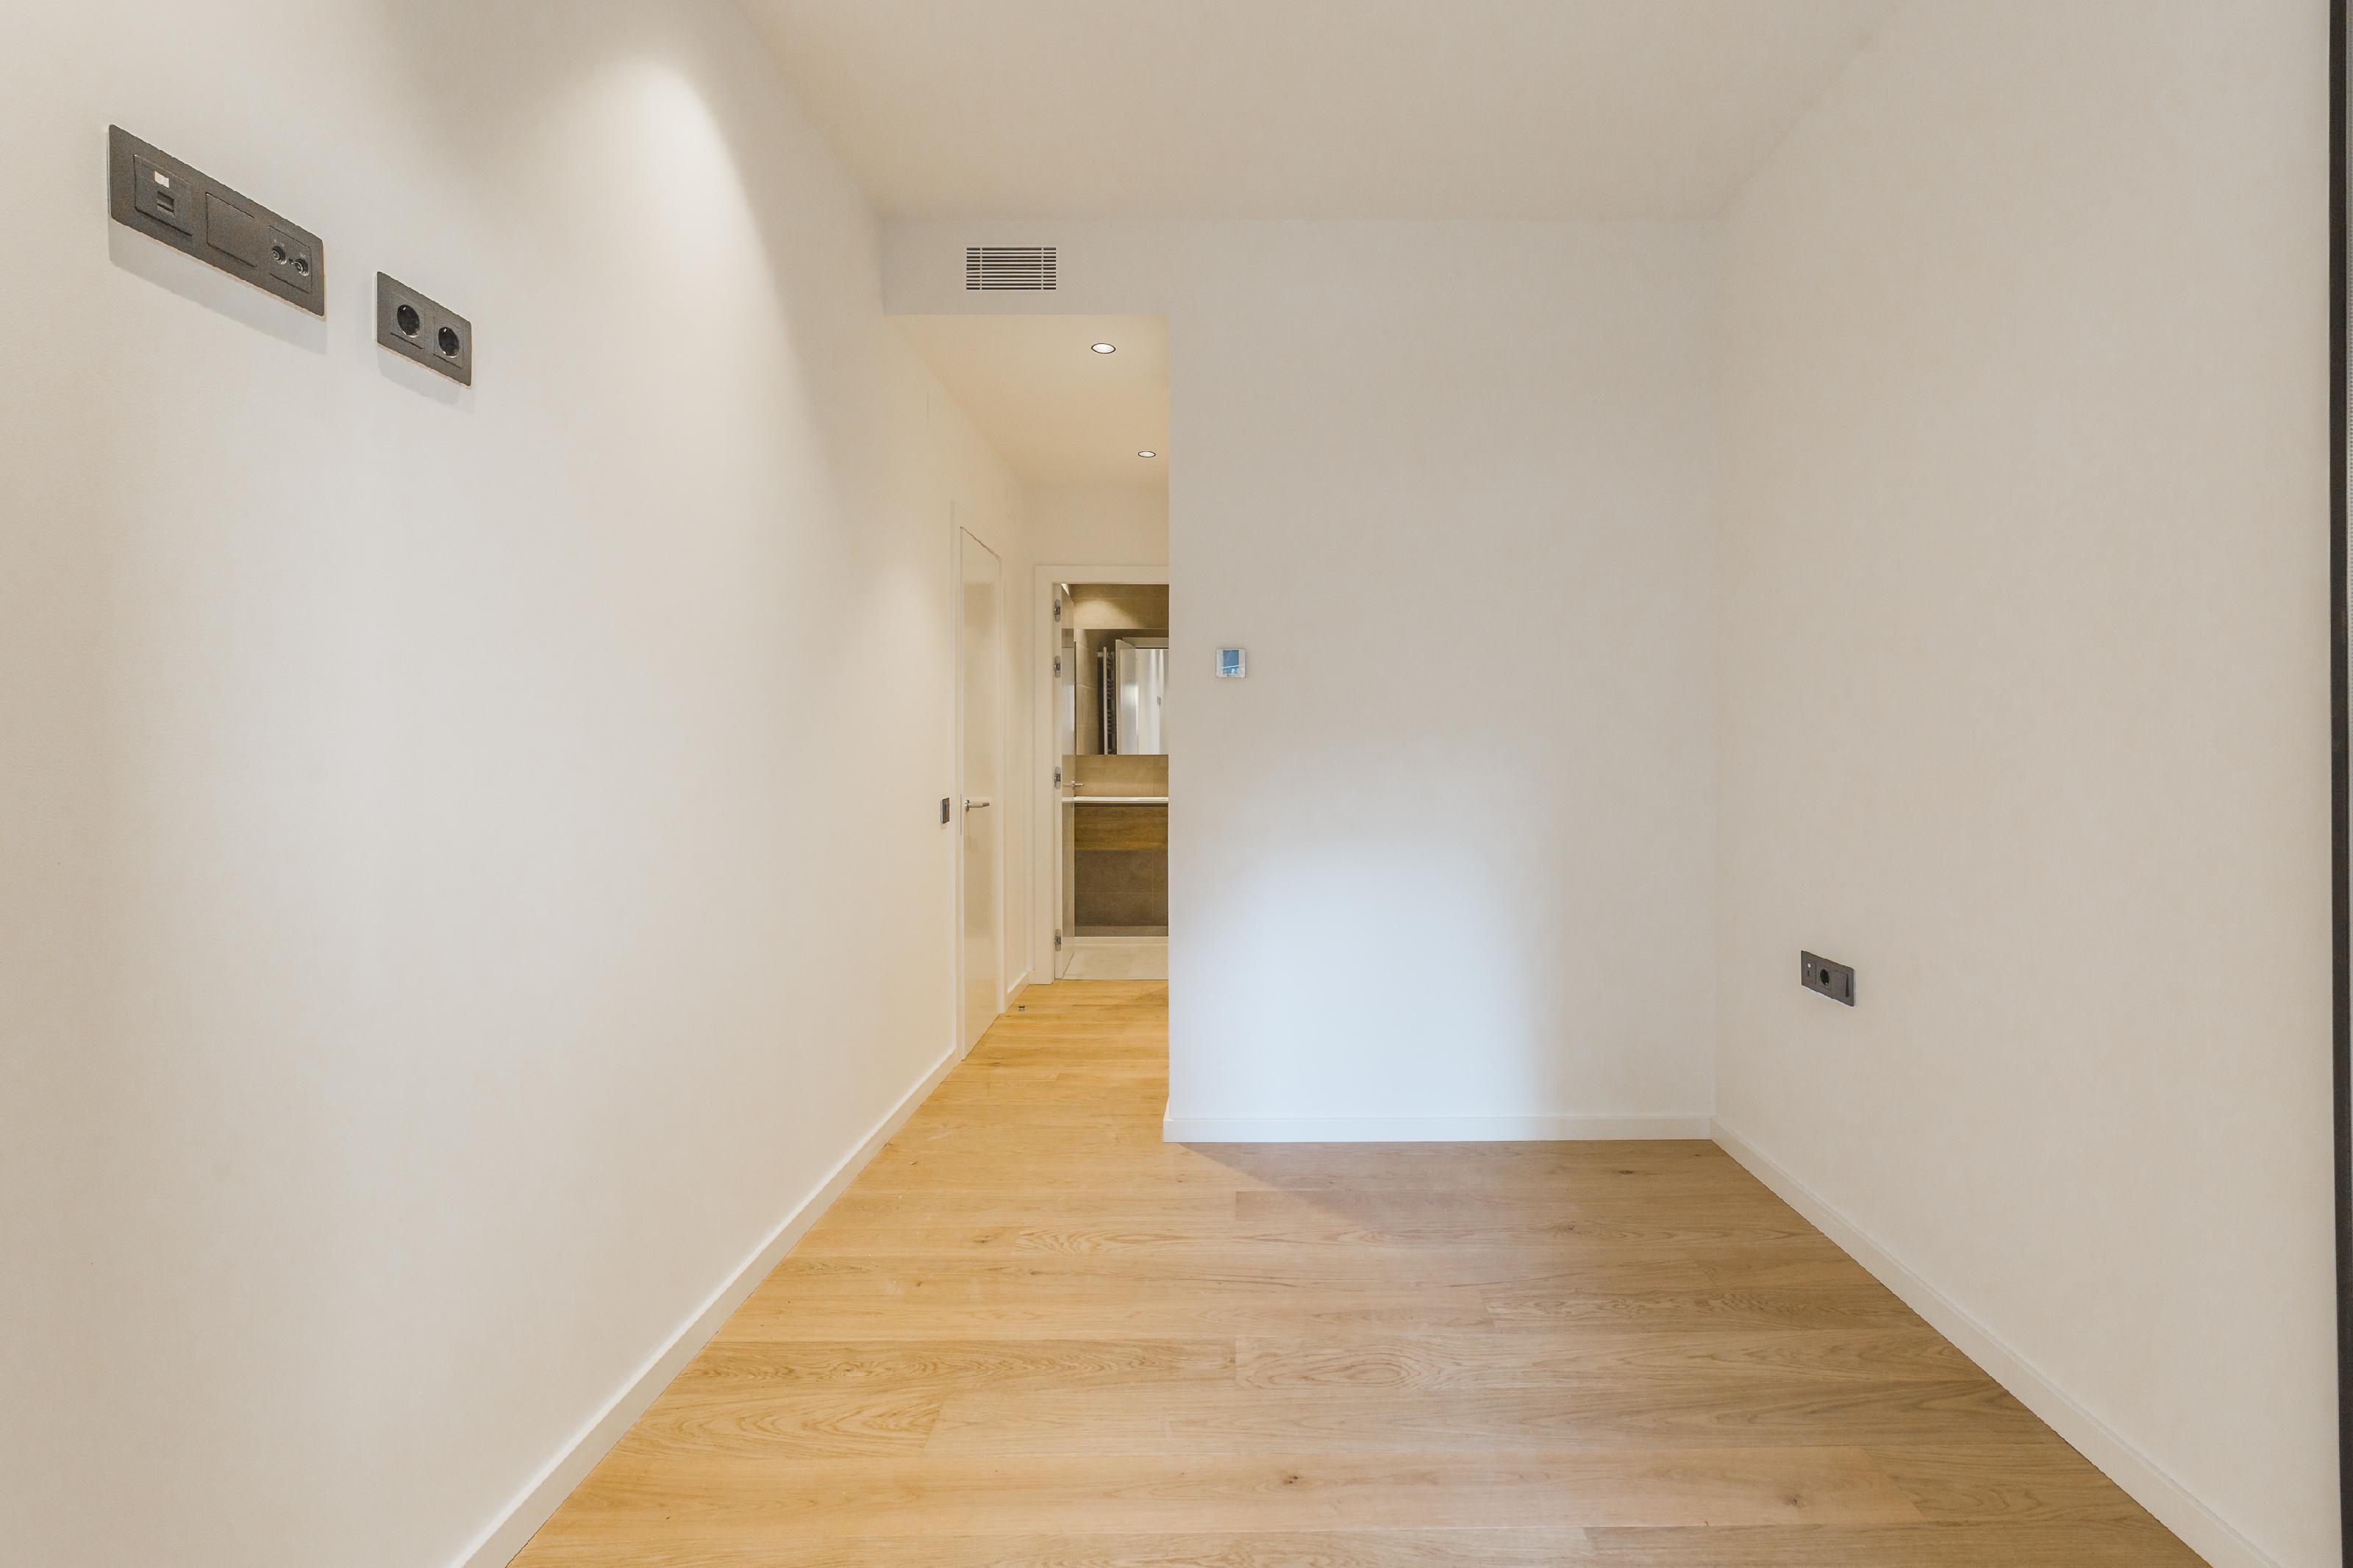 182176 Apartment for sale in Eixample, Old Left Eixample 17